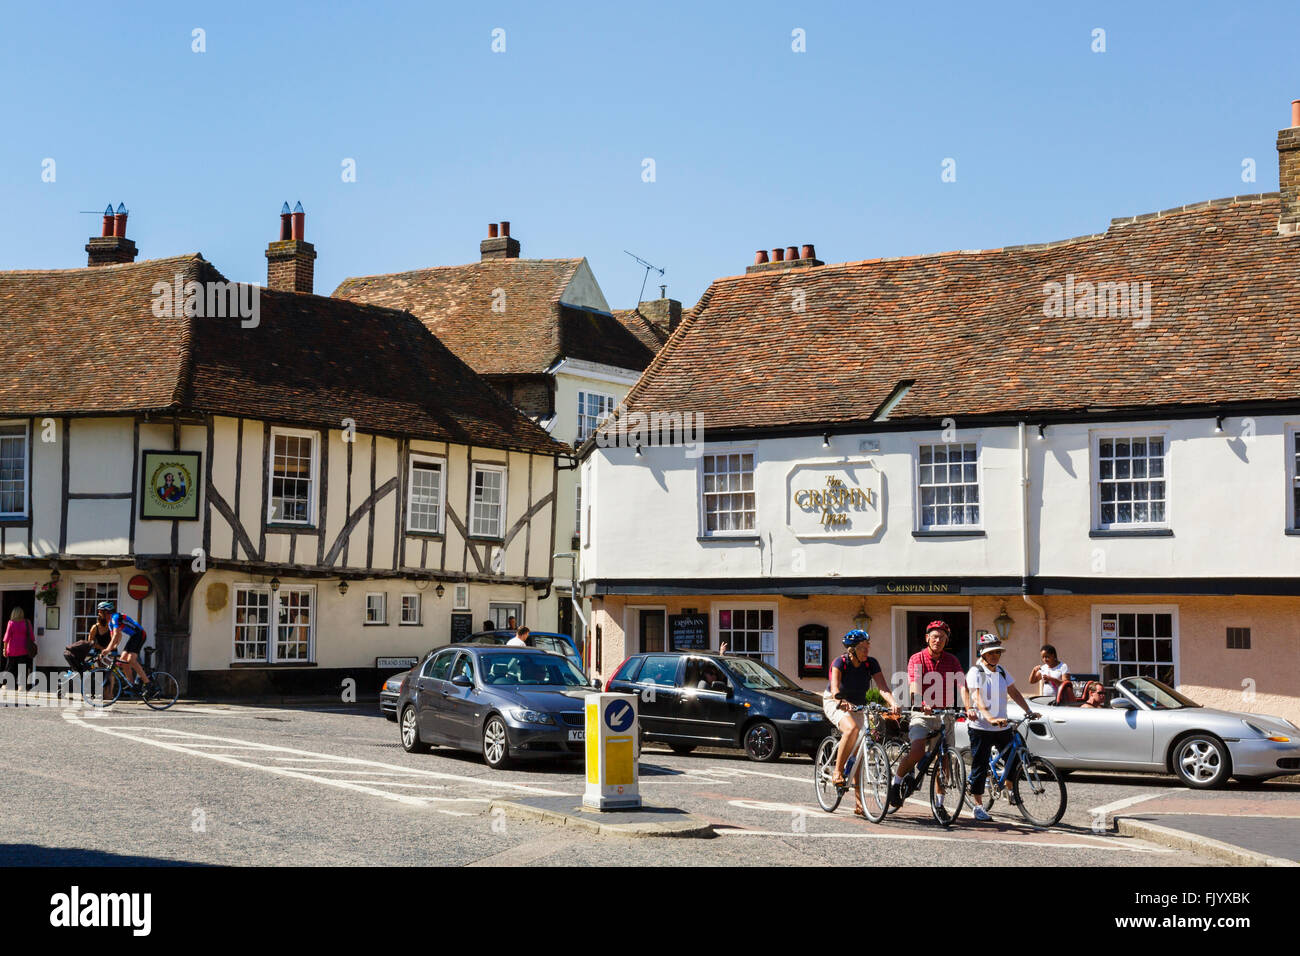 Street scene outside 15th century Admiral Owen pub and 16th century Crispin Inn in historic town of Sandwich Kent - Stock Image